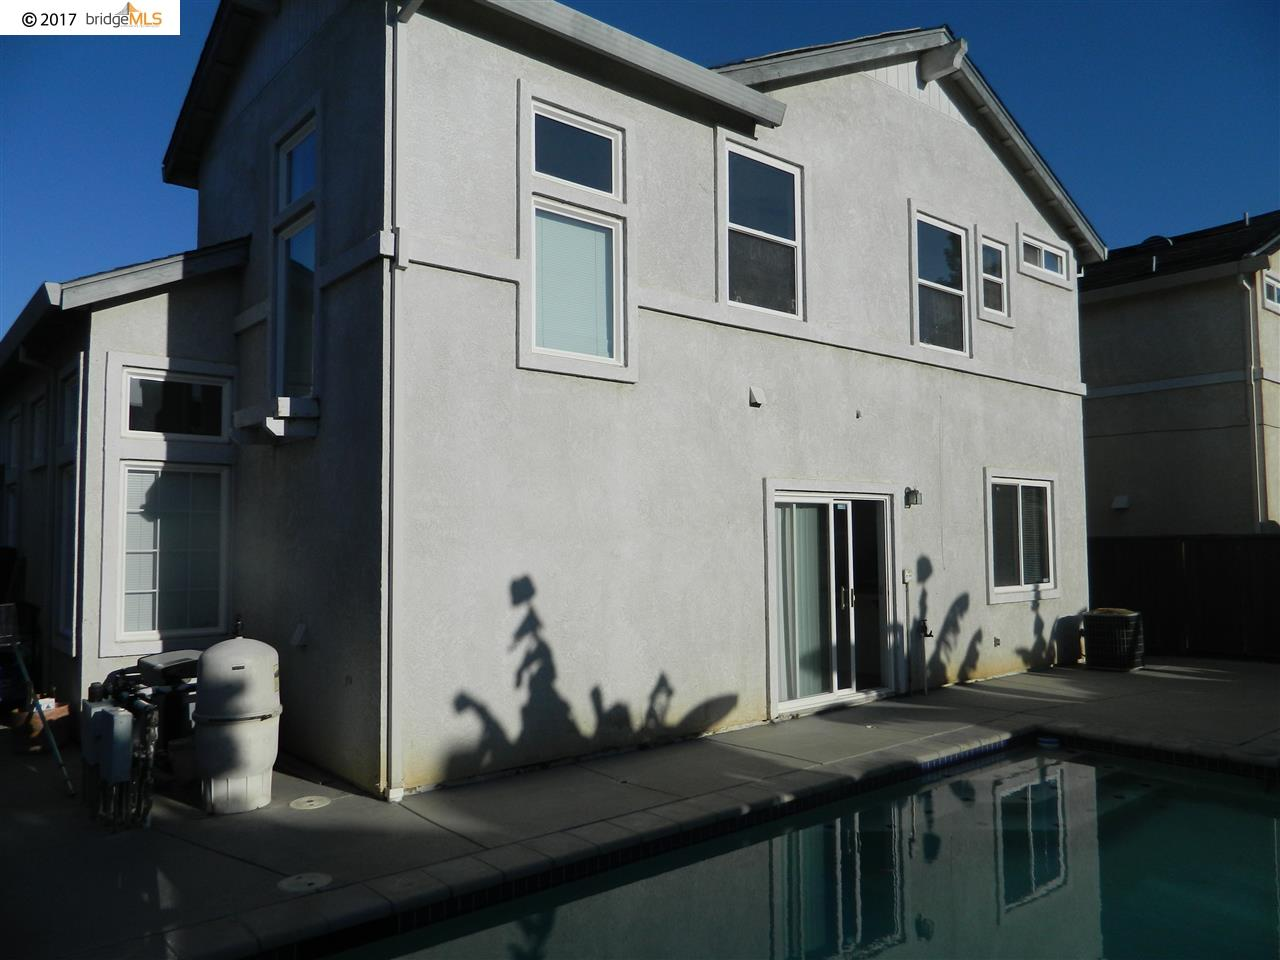 Additional photo for property listing at 1172 Shadowcliff Way  Brentwood, カリフォルニア 94513 アメリカ合衆国